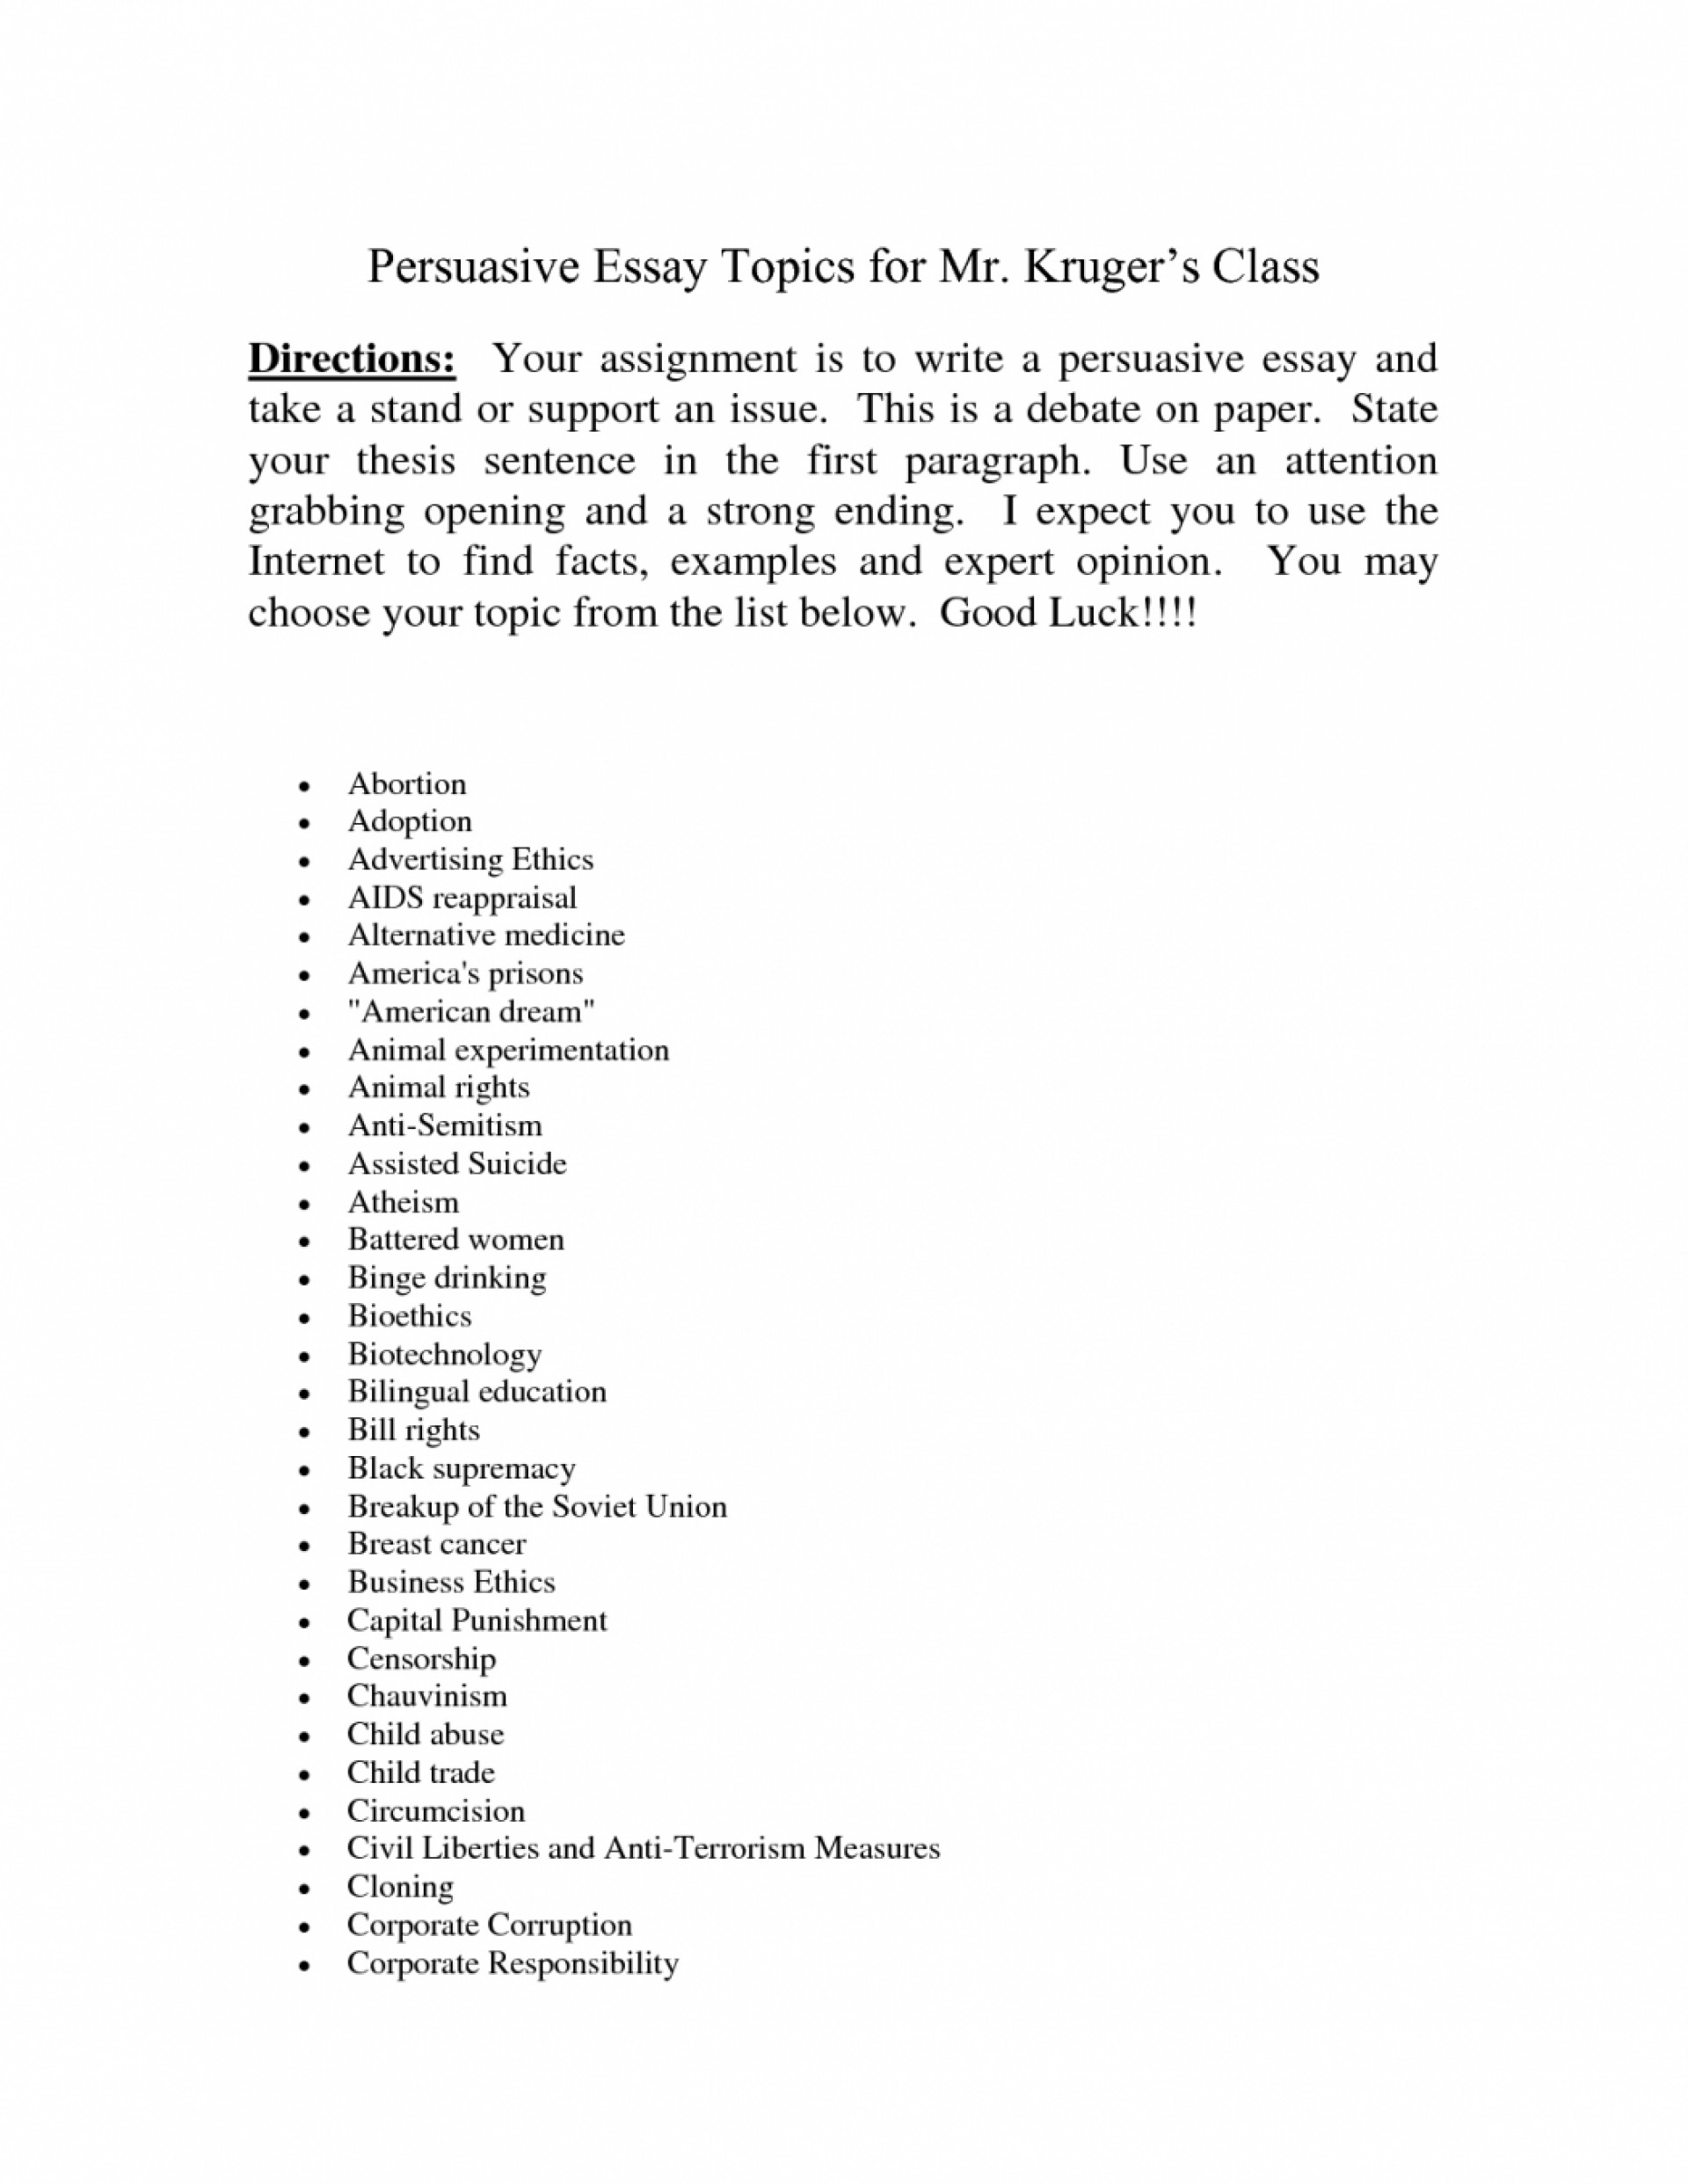 016 Persuasive Essay Topic Ideas Topics Outline Easy For High School Students College Essays Applicati 7th Graders Primary Middle Elementary Uk 1048x1356 Formidable 6th Grade 3rd 1920